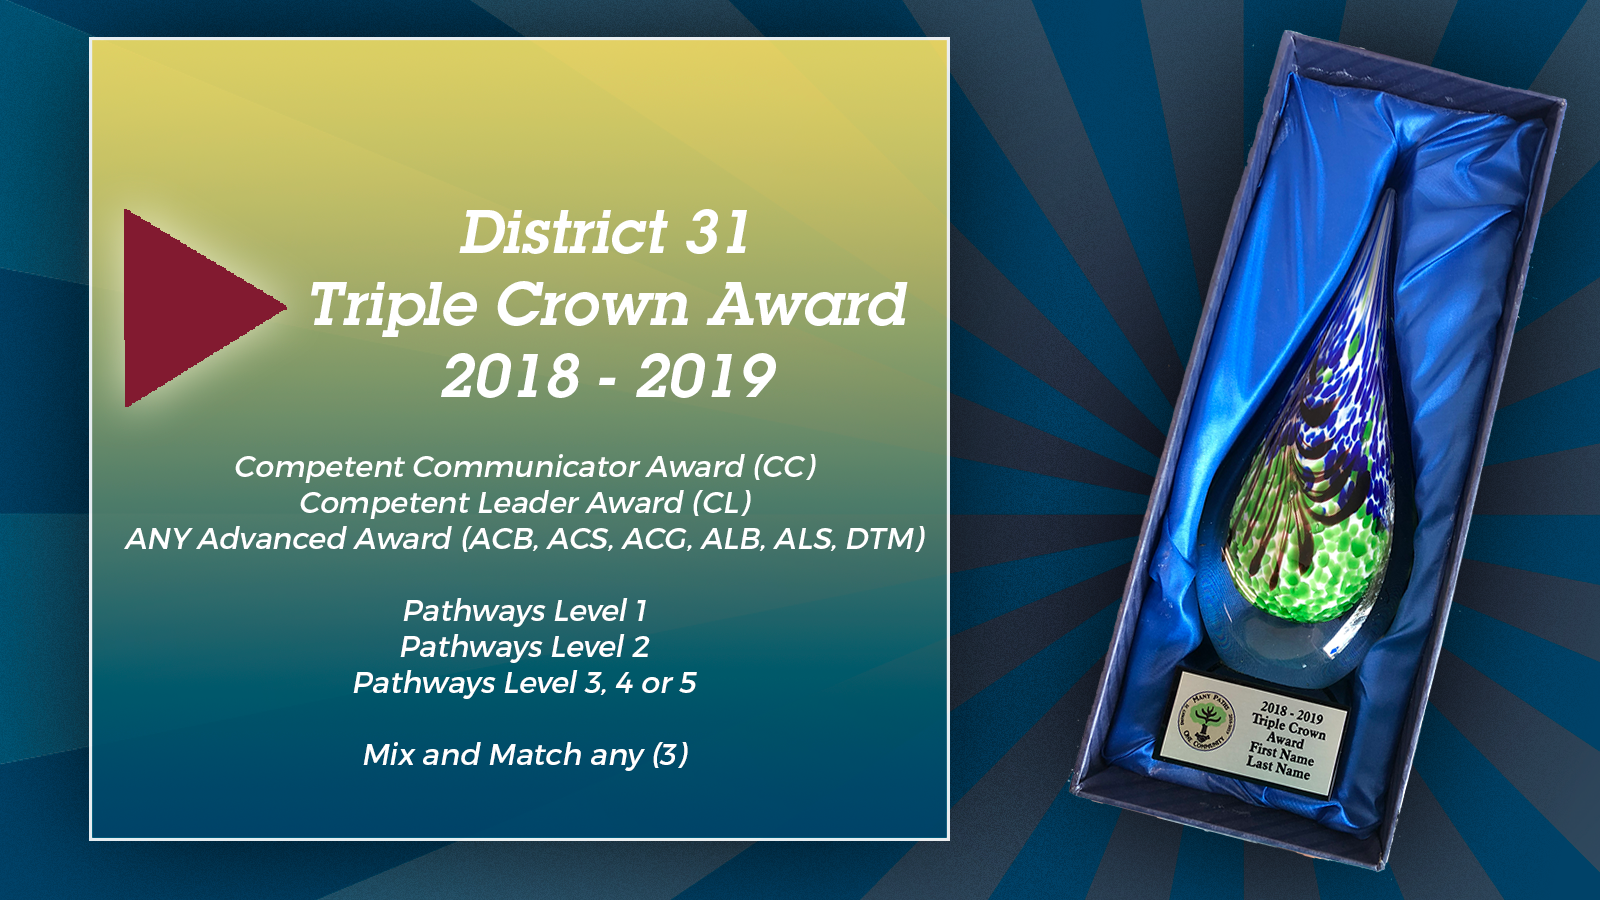 District 31 Triple Crown